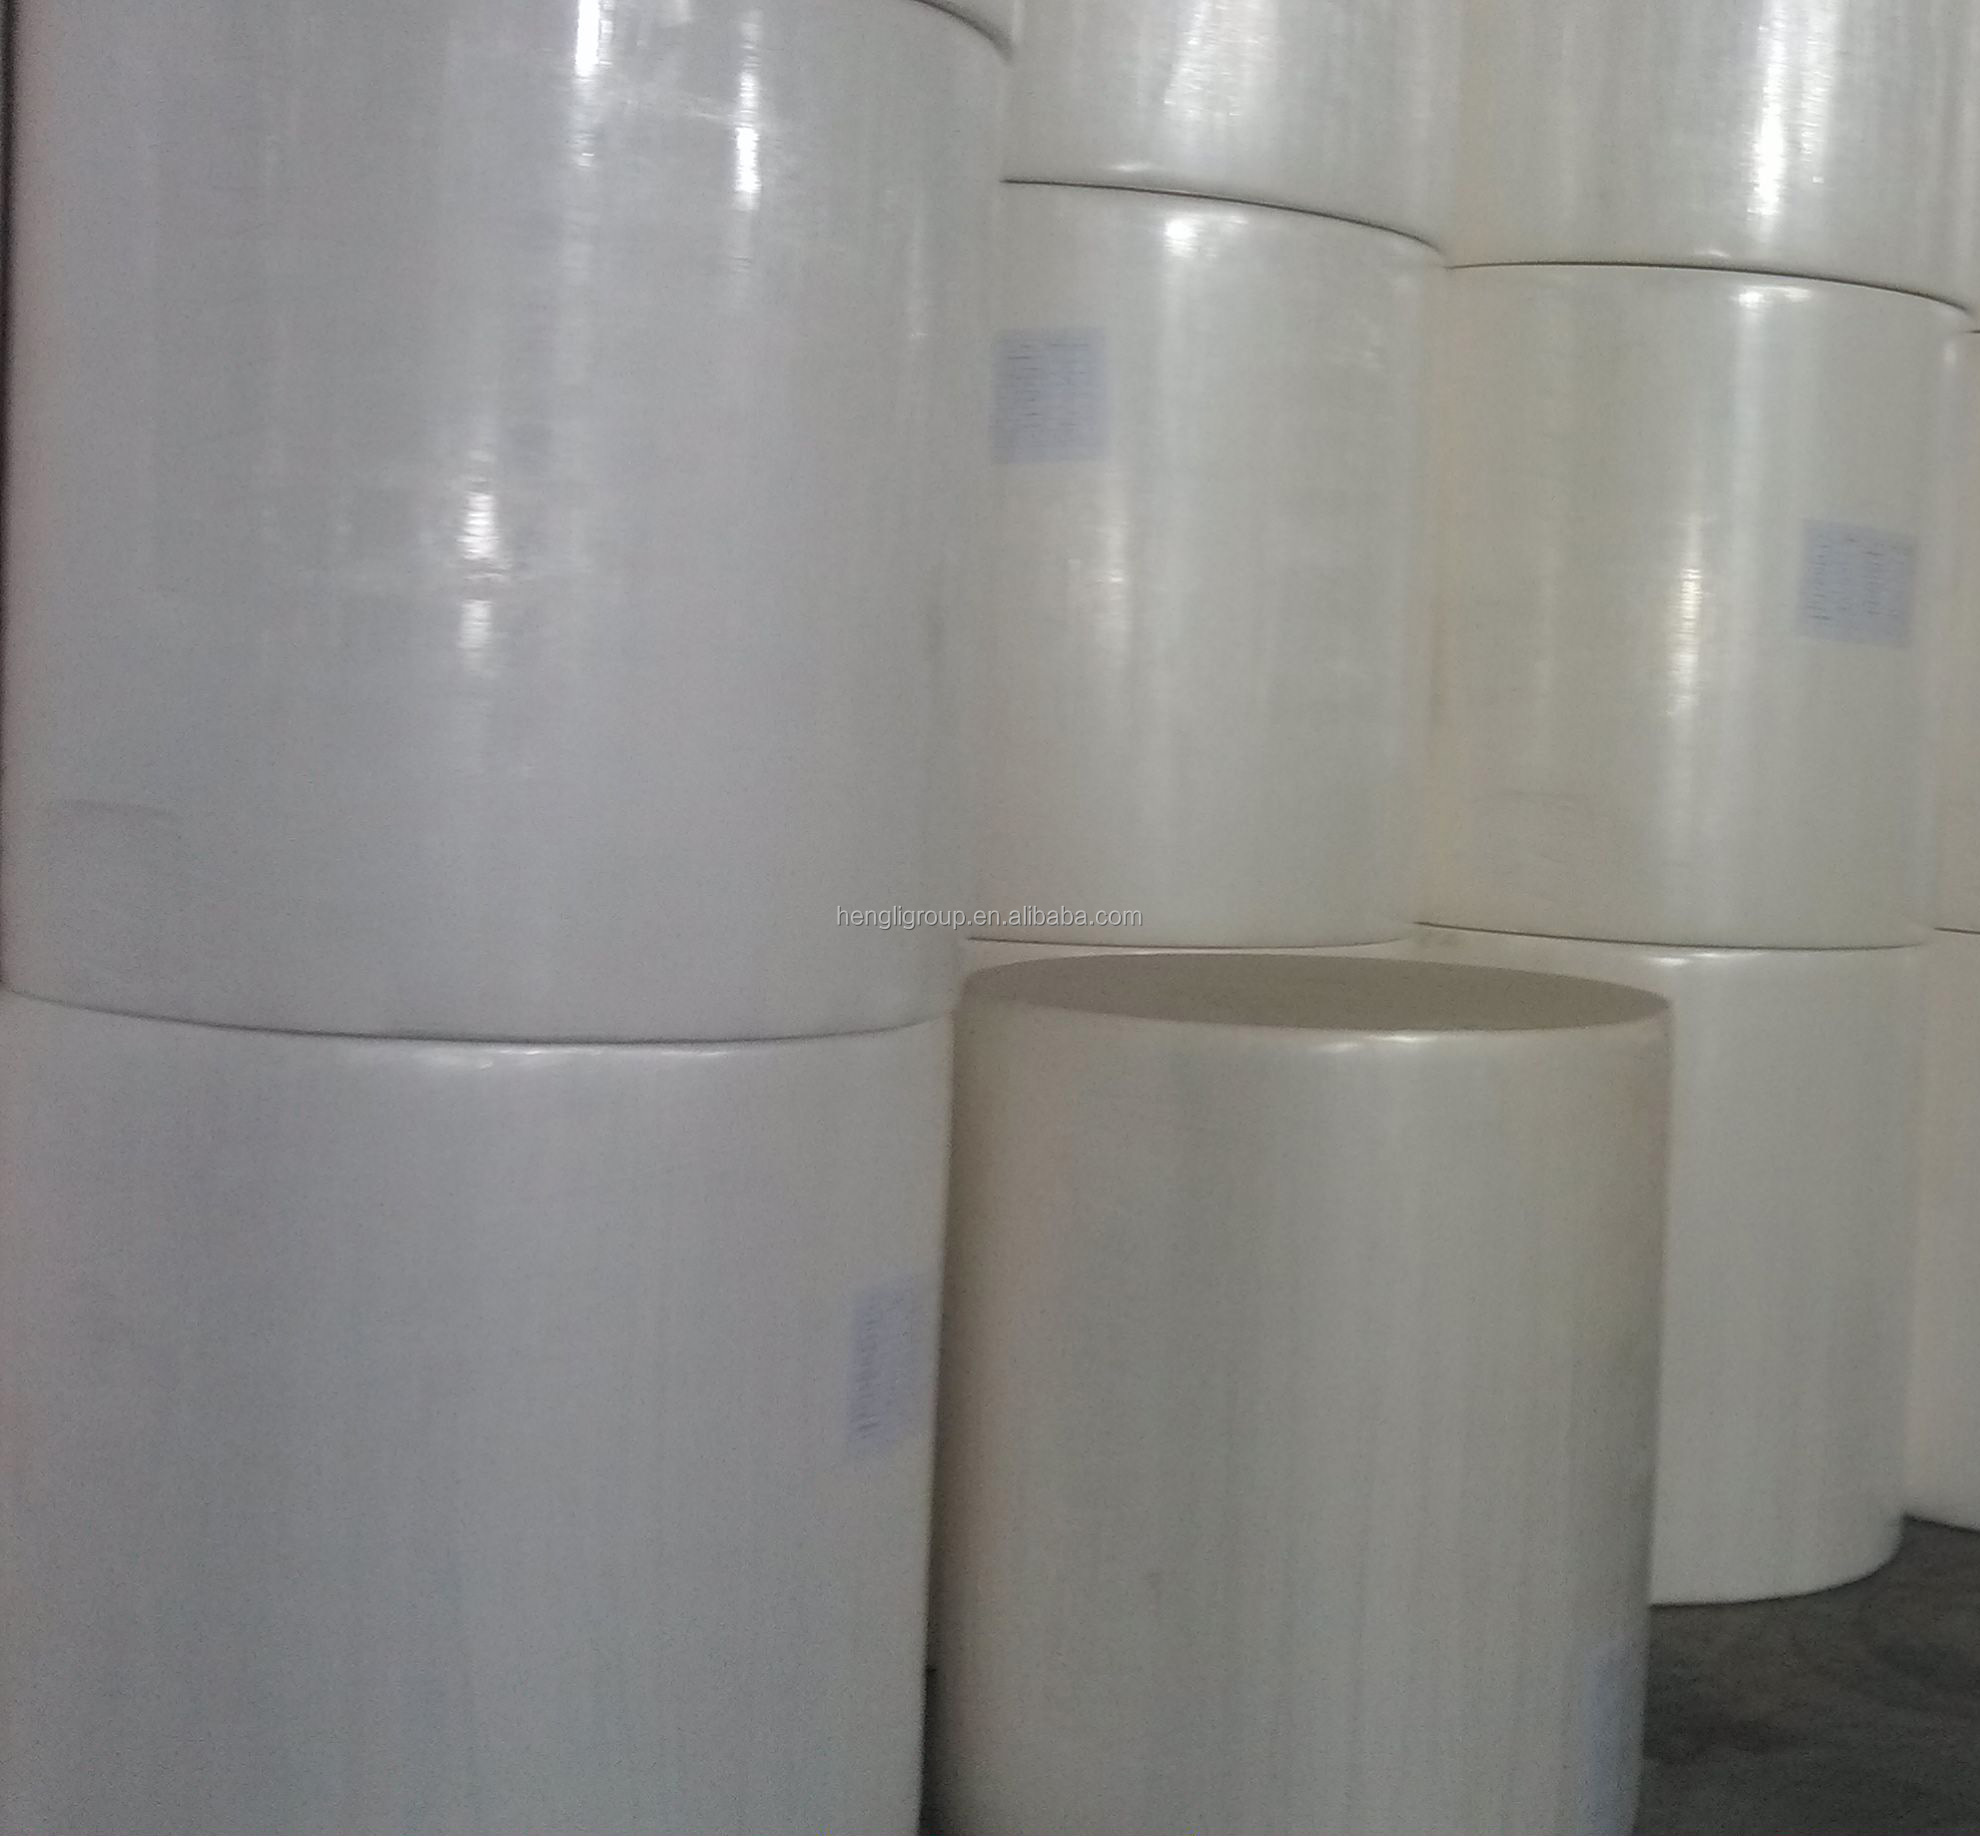 Virgin wood pulp Toilet paper jumbo roll manufacturer